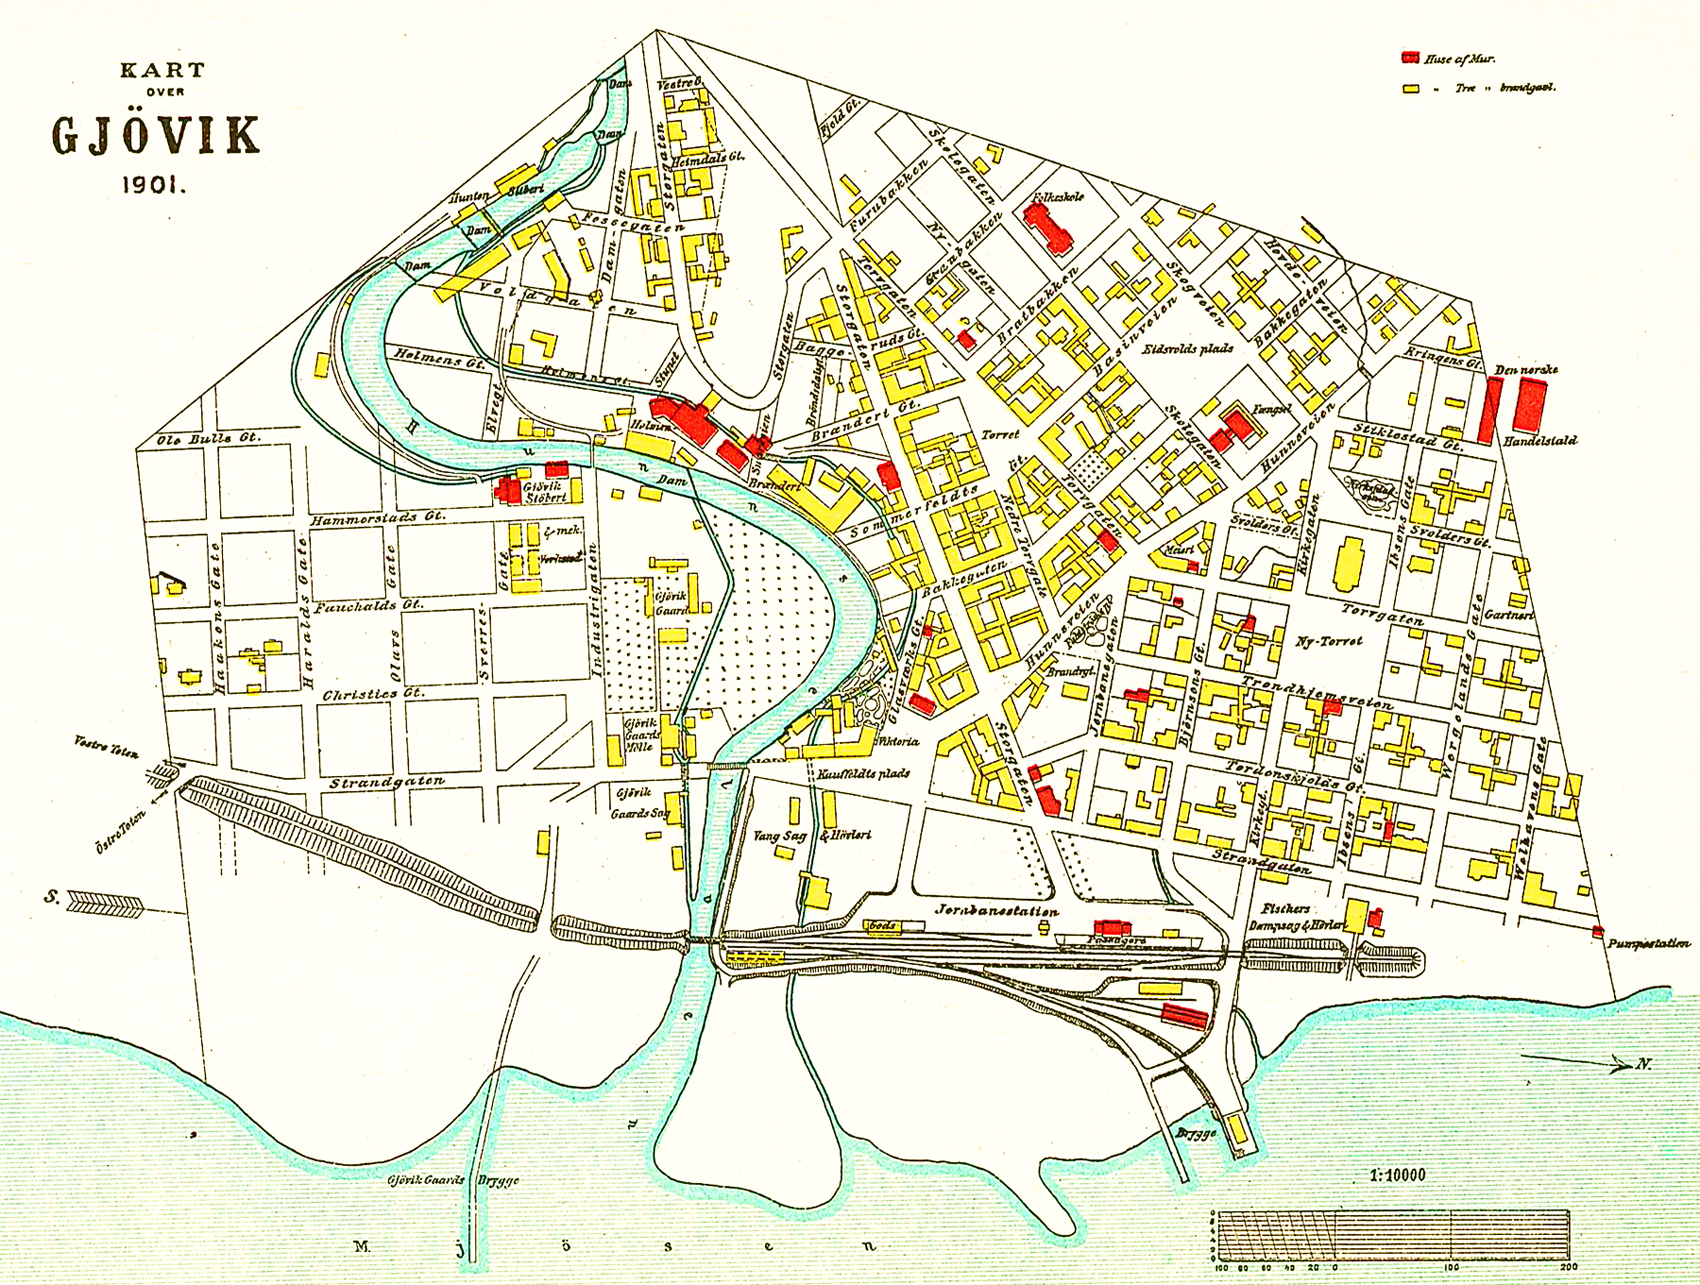 kart over gjøvik Fil:Gjøvik map 1901. – Wikipedia kart over gjøvik